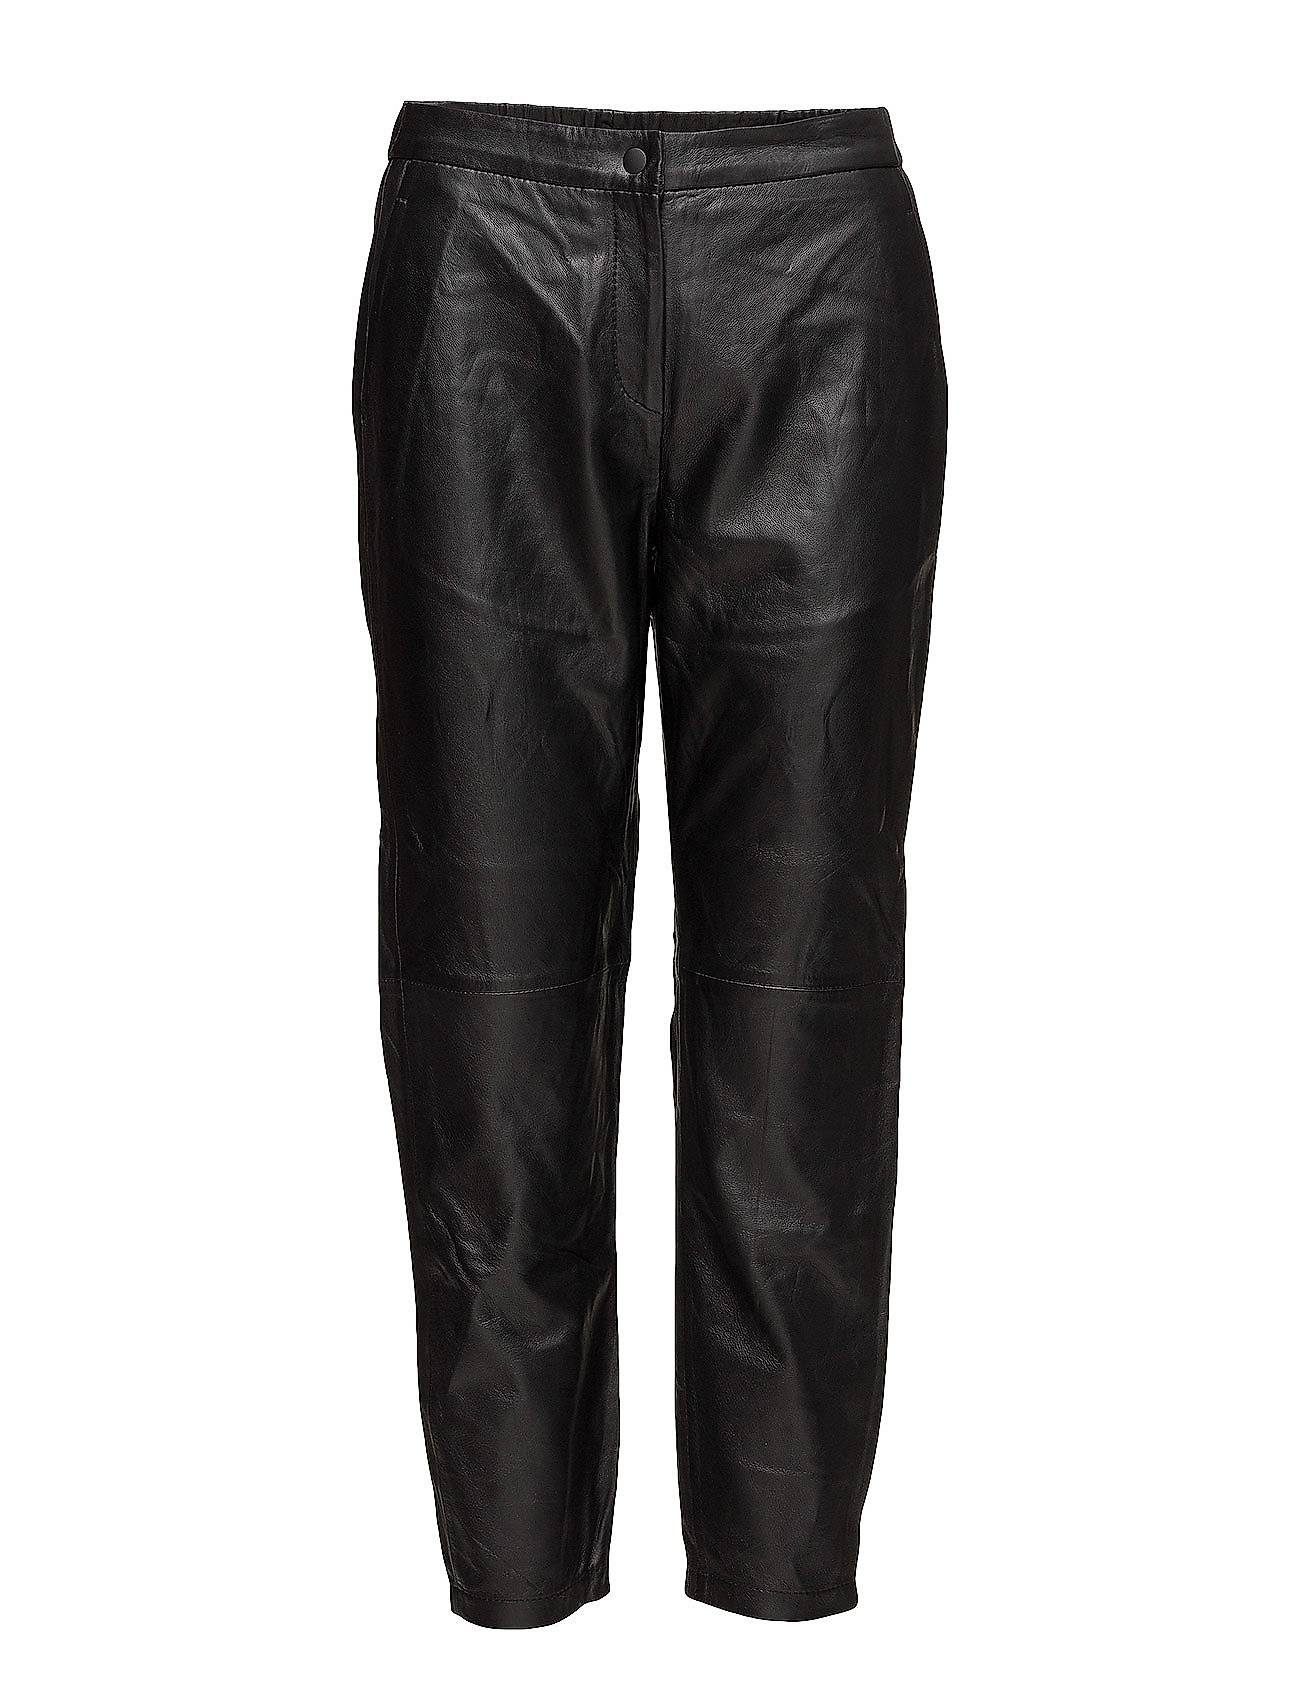 Selected Femme Sfcassie Mw Crop Leather Pant